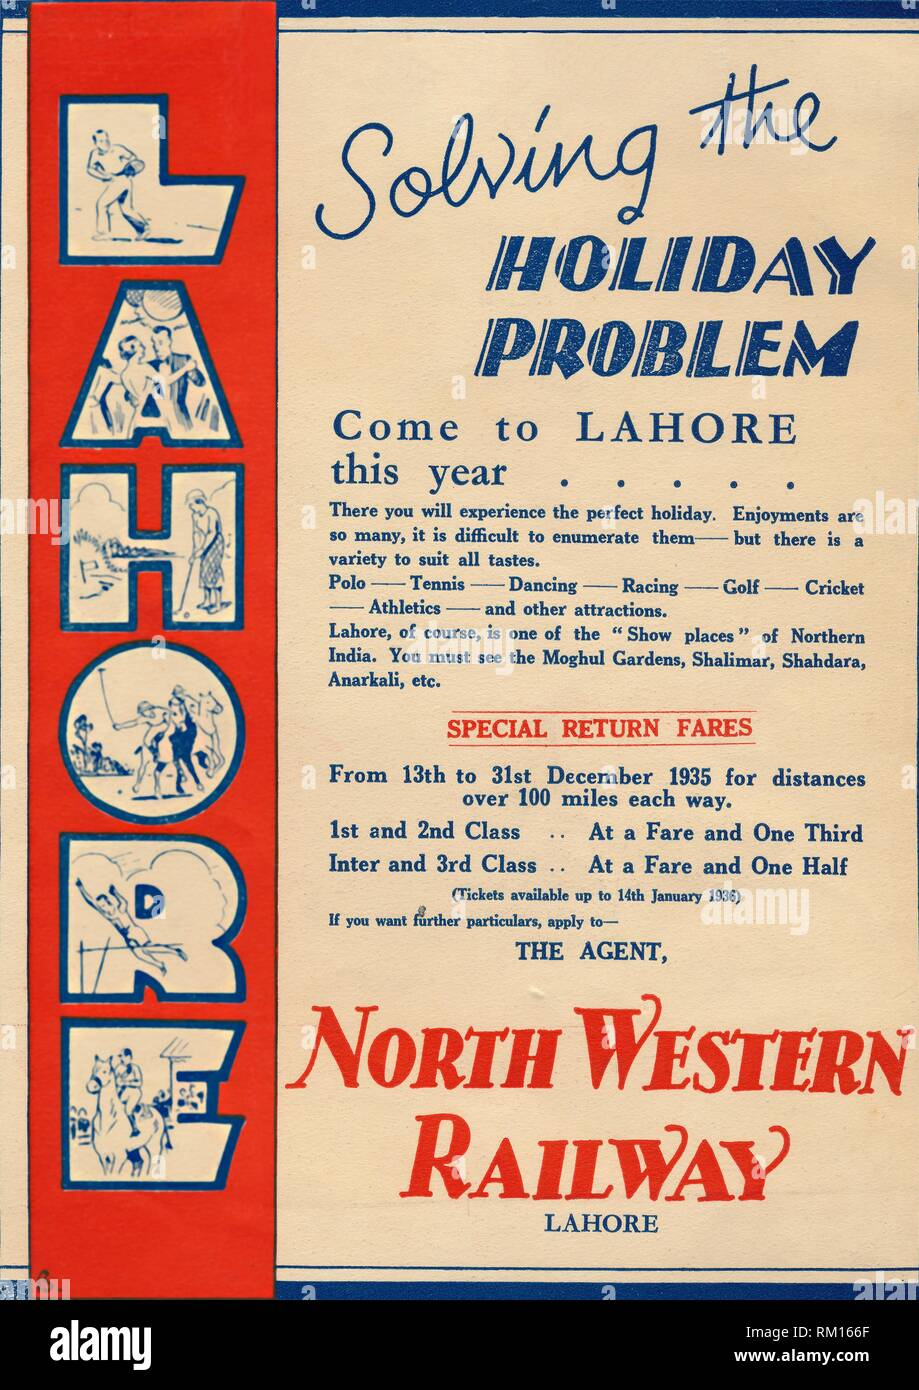 """Advertisement for the North Western Railway promoting travel to Lahore, 1936. 'Solving the Holiday Problem - Come to Lahore this year'. Advertisement aimed at the British colonial community, for railway travel to the city of Lahore in northern India, (now in Pakistan). Attractions included various sports, dancing, and the Moghul Gardens. From """"The Civil and Military Gazette"""" Annual, 1936. [India, 1936] - Stock Image"""